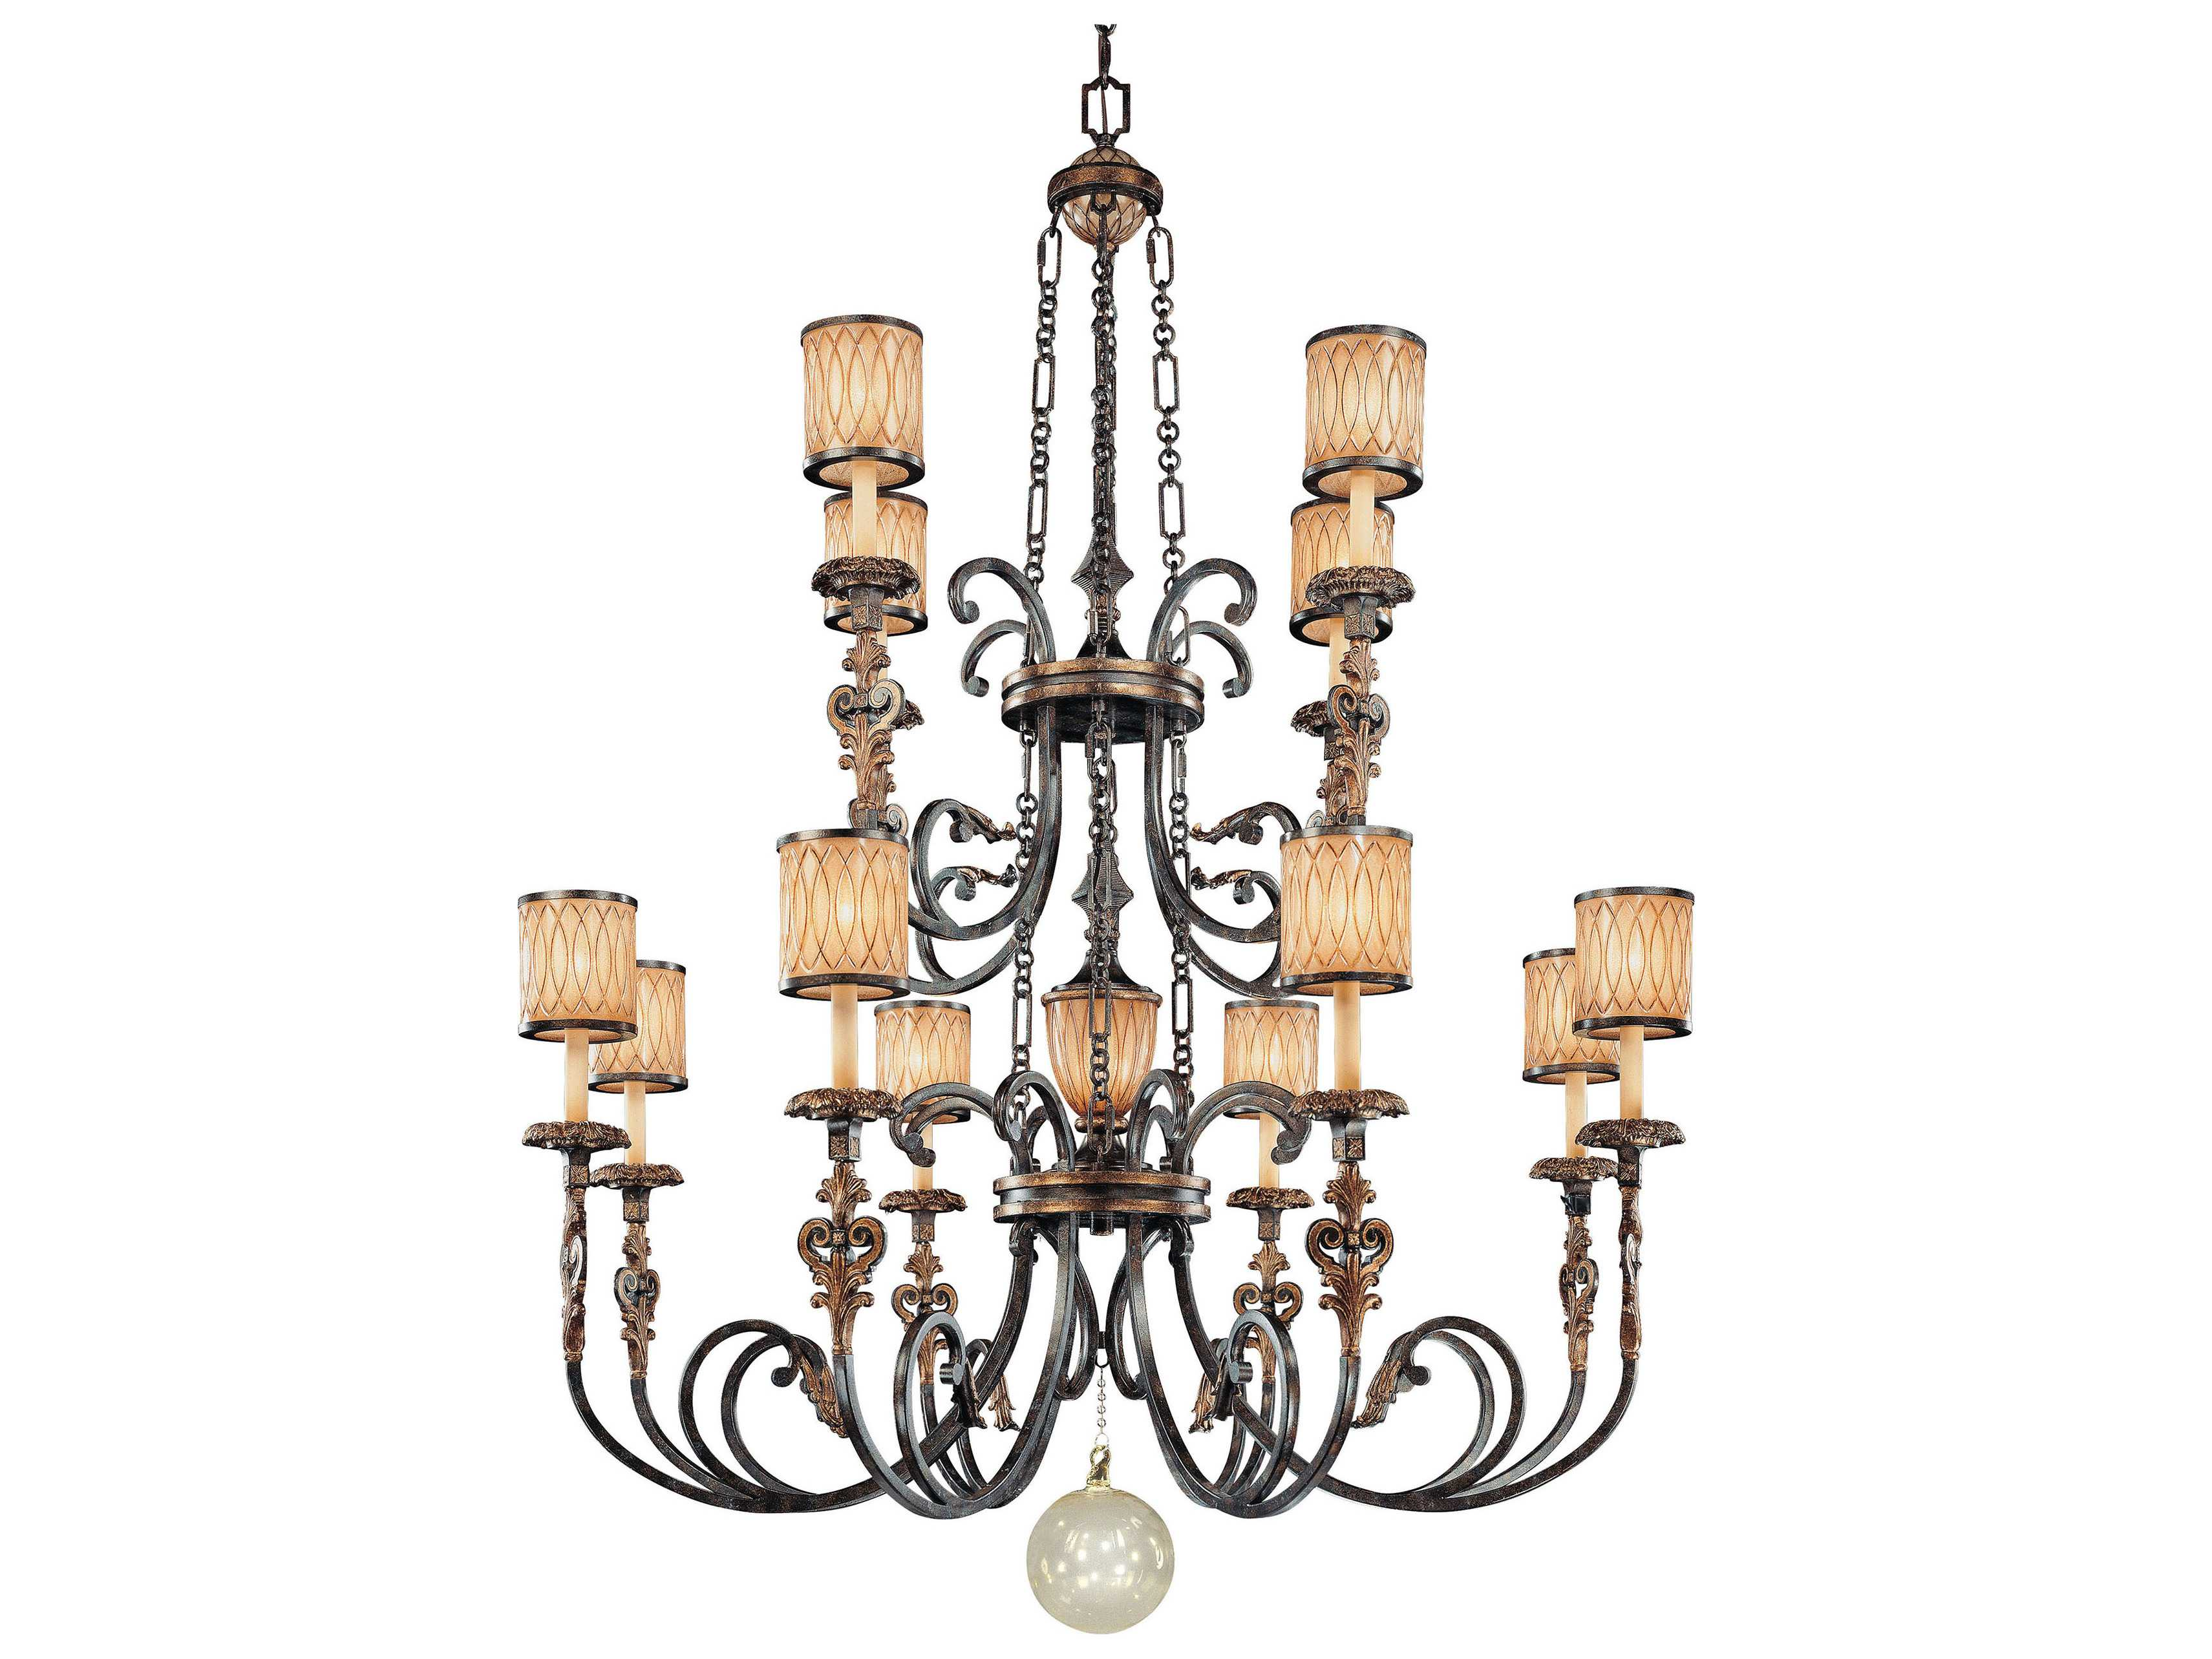 Metropolitan Lighting Terraza Villa Aged Patina With Gold Leaf Accents 13 Lights 54 Wide Grand Chandelier